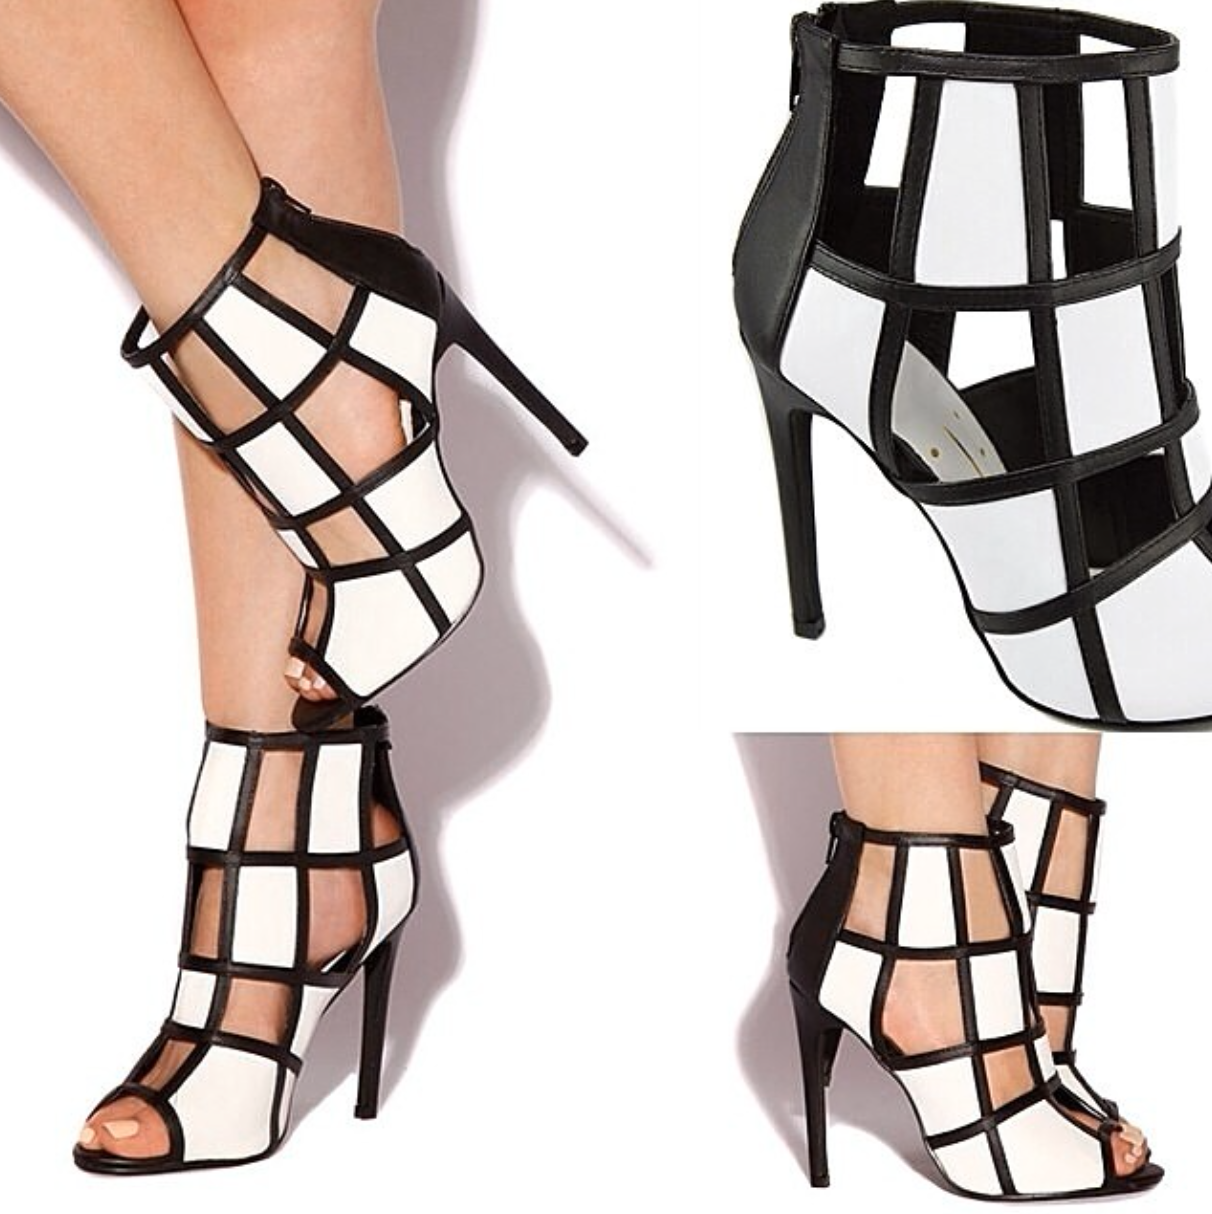 ⚫️⚪️⚫️⚪️◼️◻️◼️◻️ It's Time To Add A Twist To Your Already Fabulous Summer Wardrobe!☀️ Aren't These Single Sole Heels Absolutely Amazing?!? Add Our Highly Requested ✨UPGRADED HEAT✨ To Your Collection NOW! #LOLASHOETIQUE Tag Any Shoe-Lover That Would Love These!